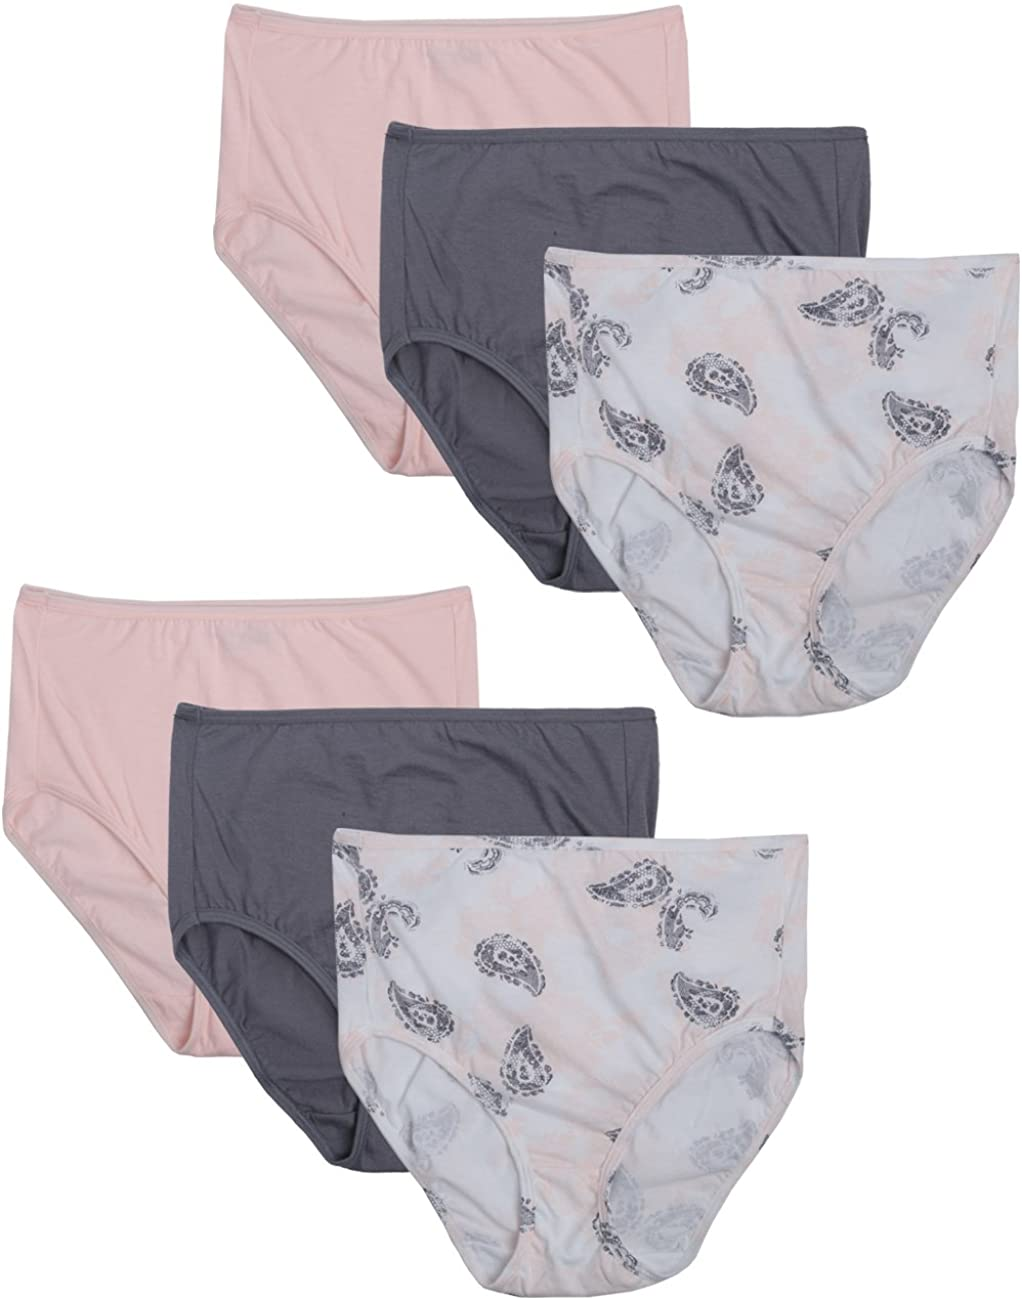 Bali Women's Luxe Cotton 6 Pack Brief Panty, Assorted